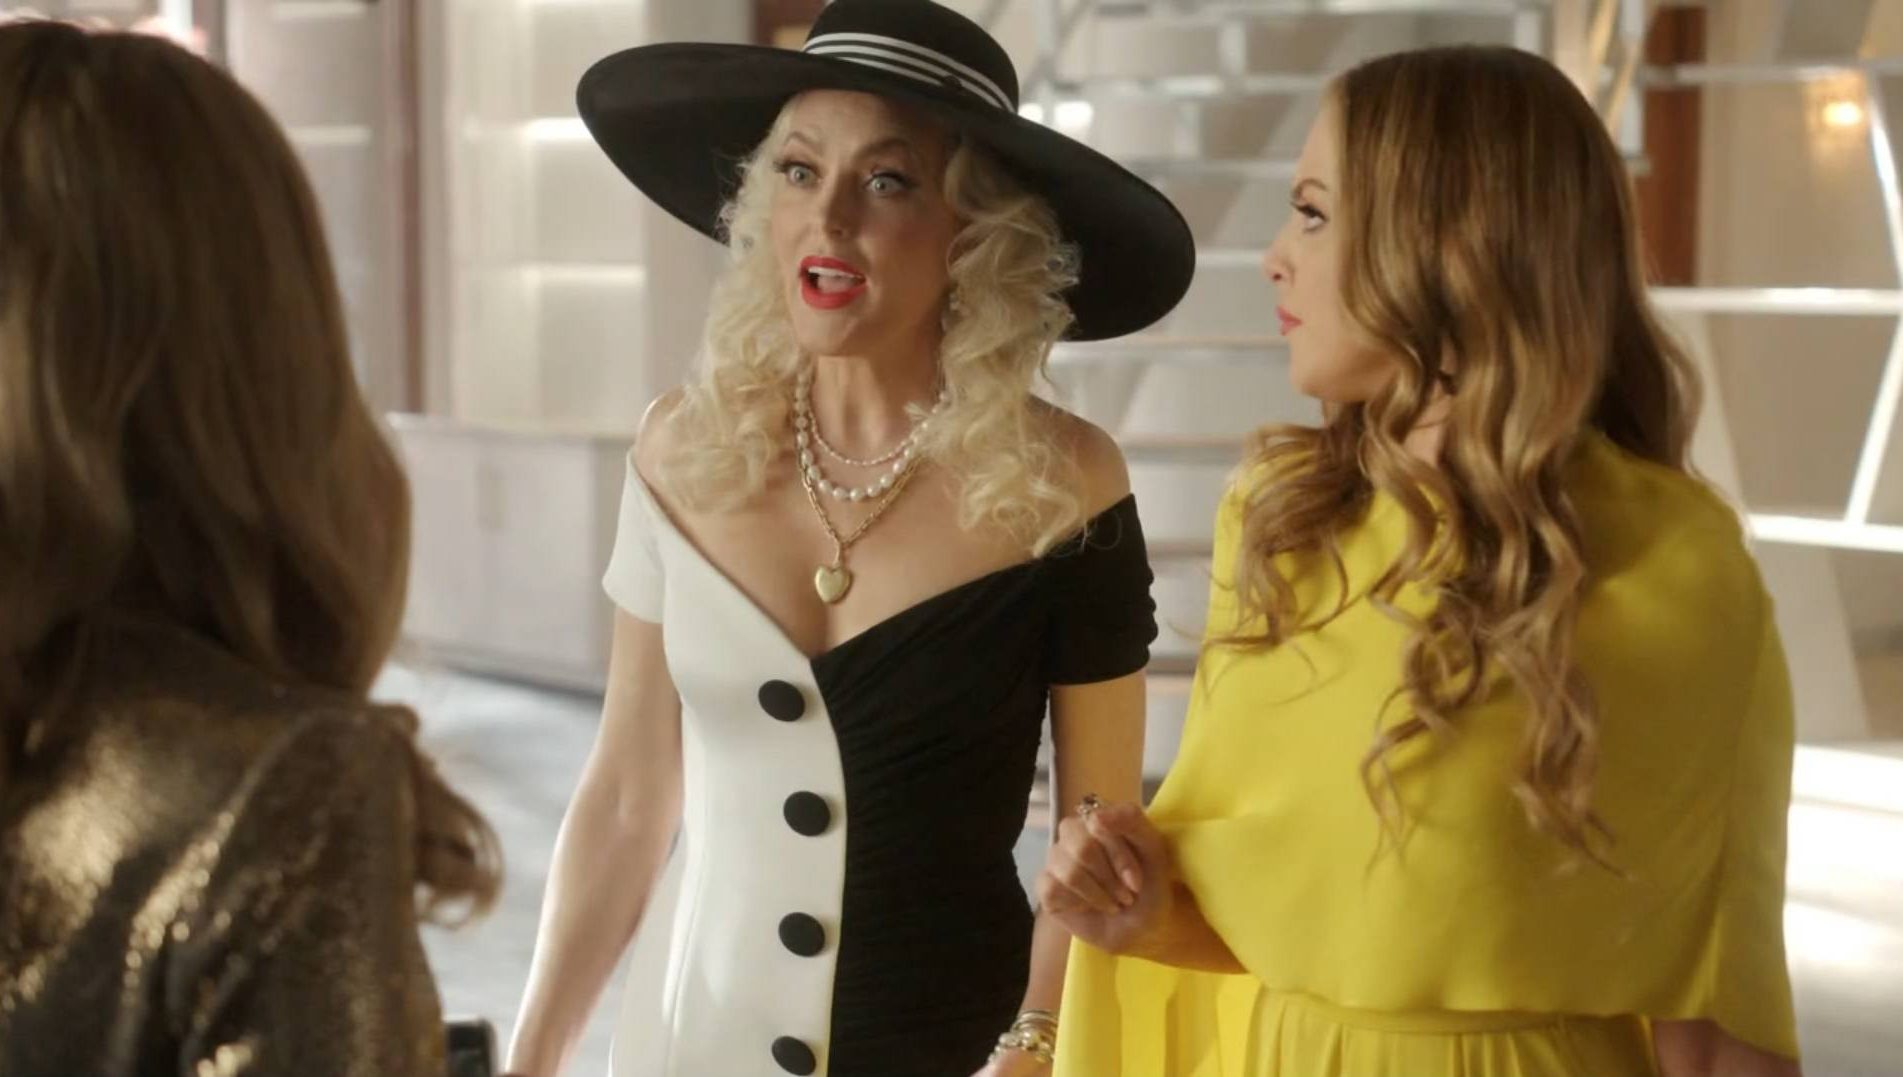 Events From Previous Episode That May Affect Dynasty Season 4 Episode 16